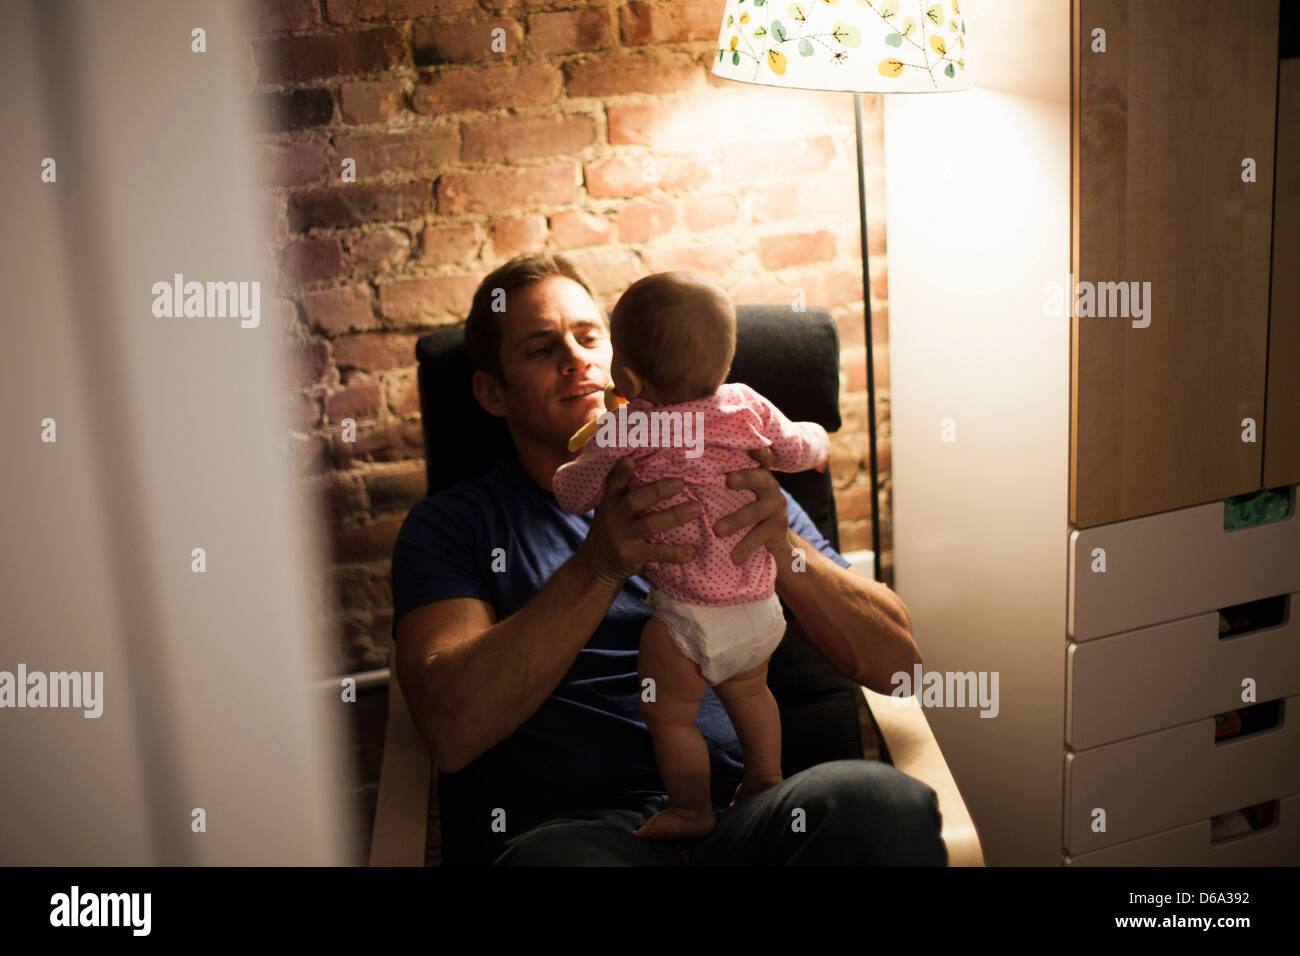 Father holding baby daughter in armchair - Stock Image